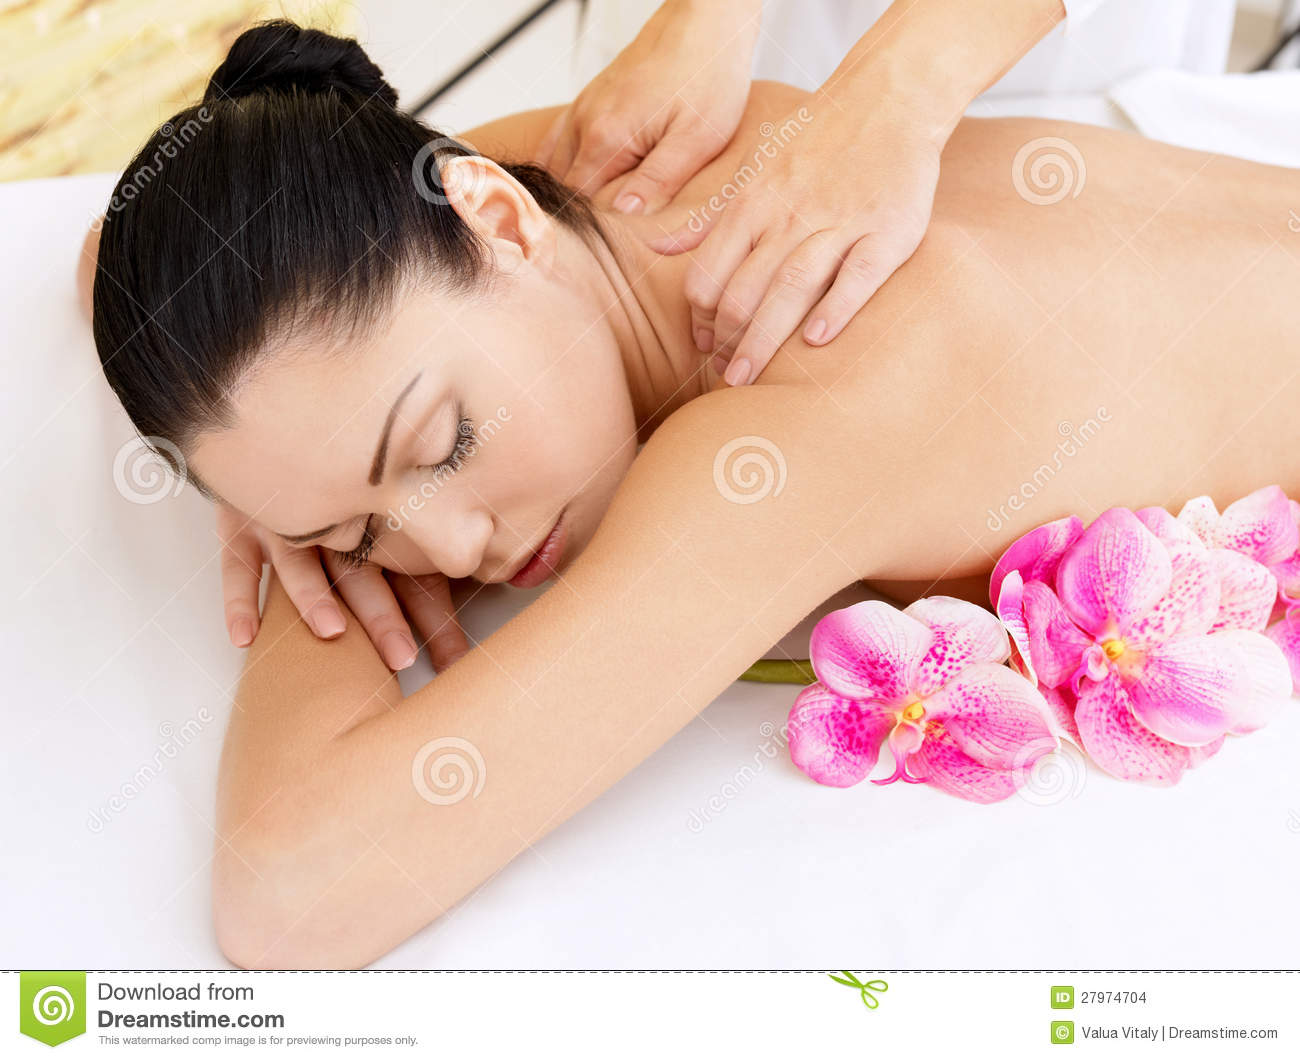 Massage Cards Travel To You